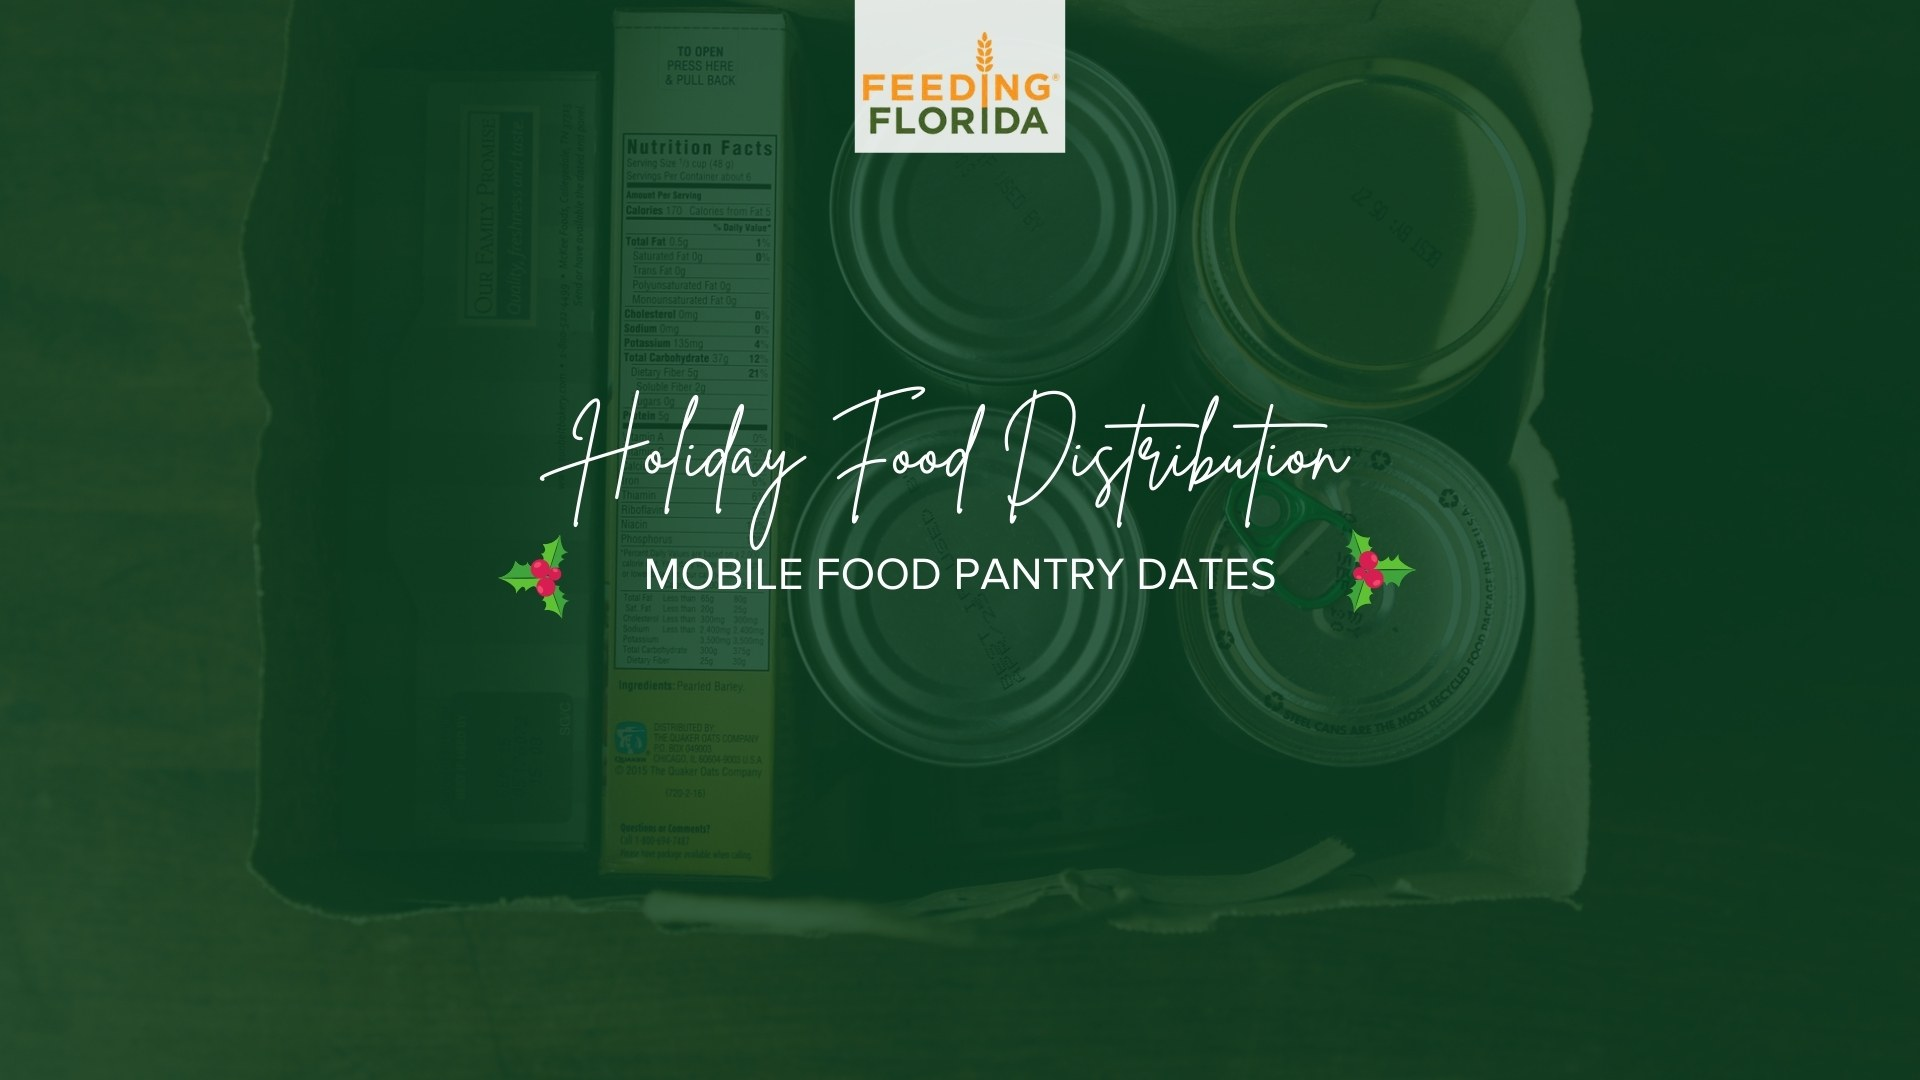 Feeding Florida | Community Life Church, Gulf Breeze, FL |